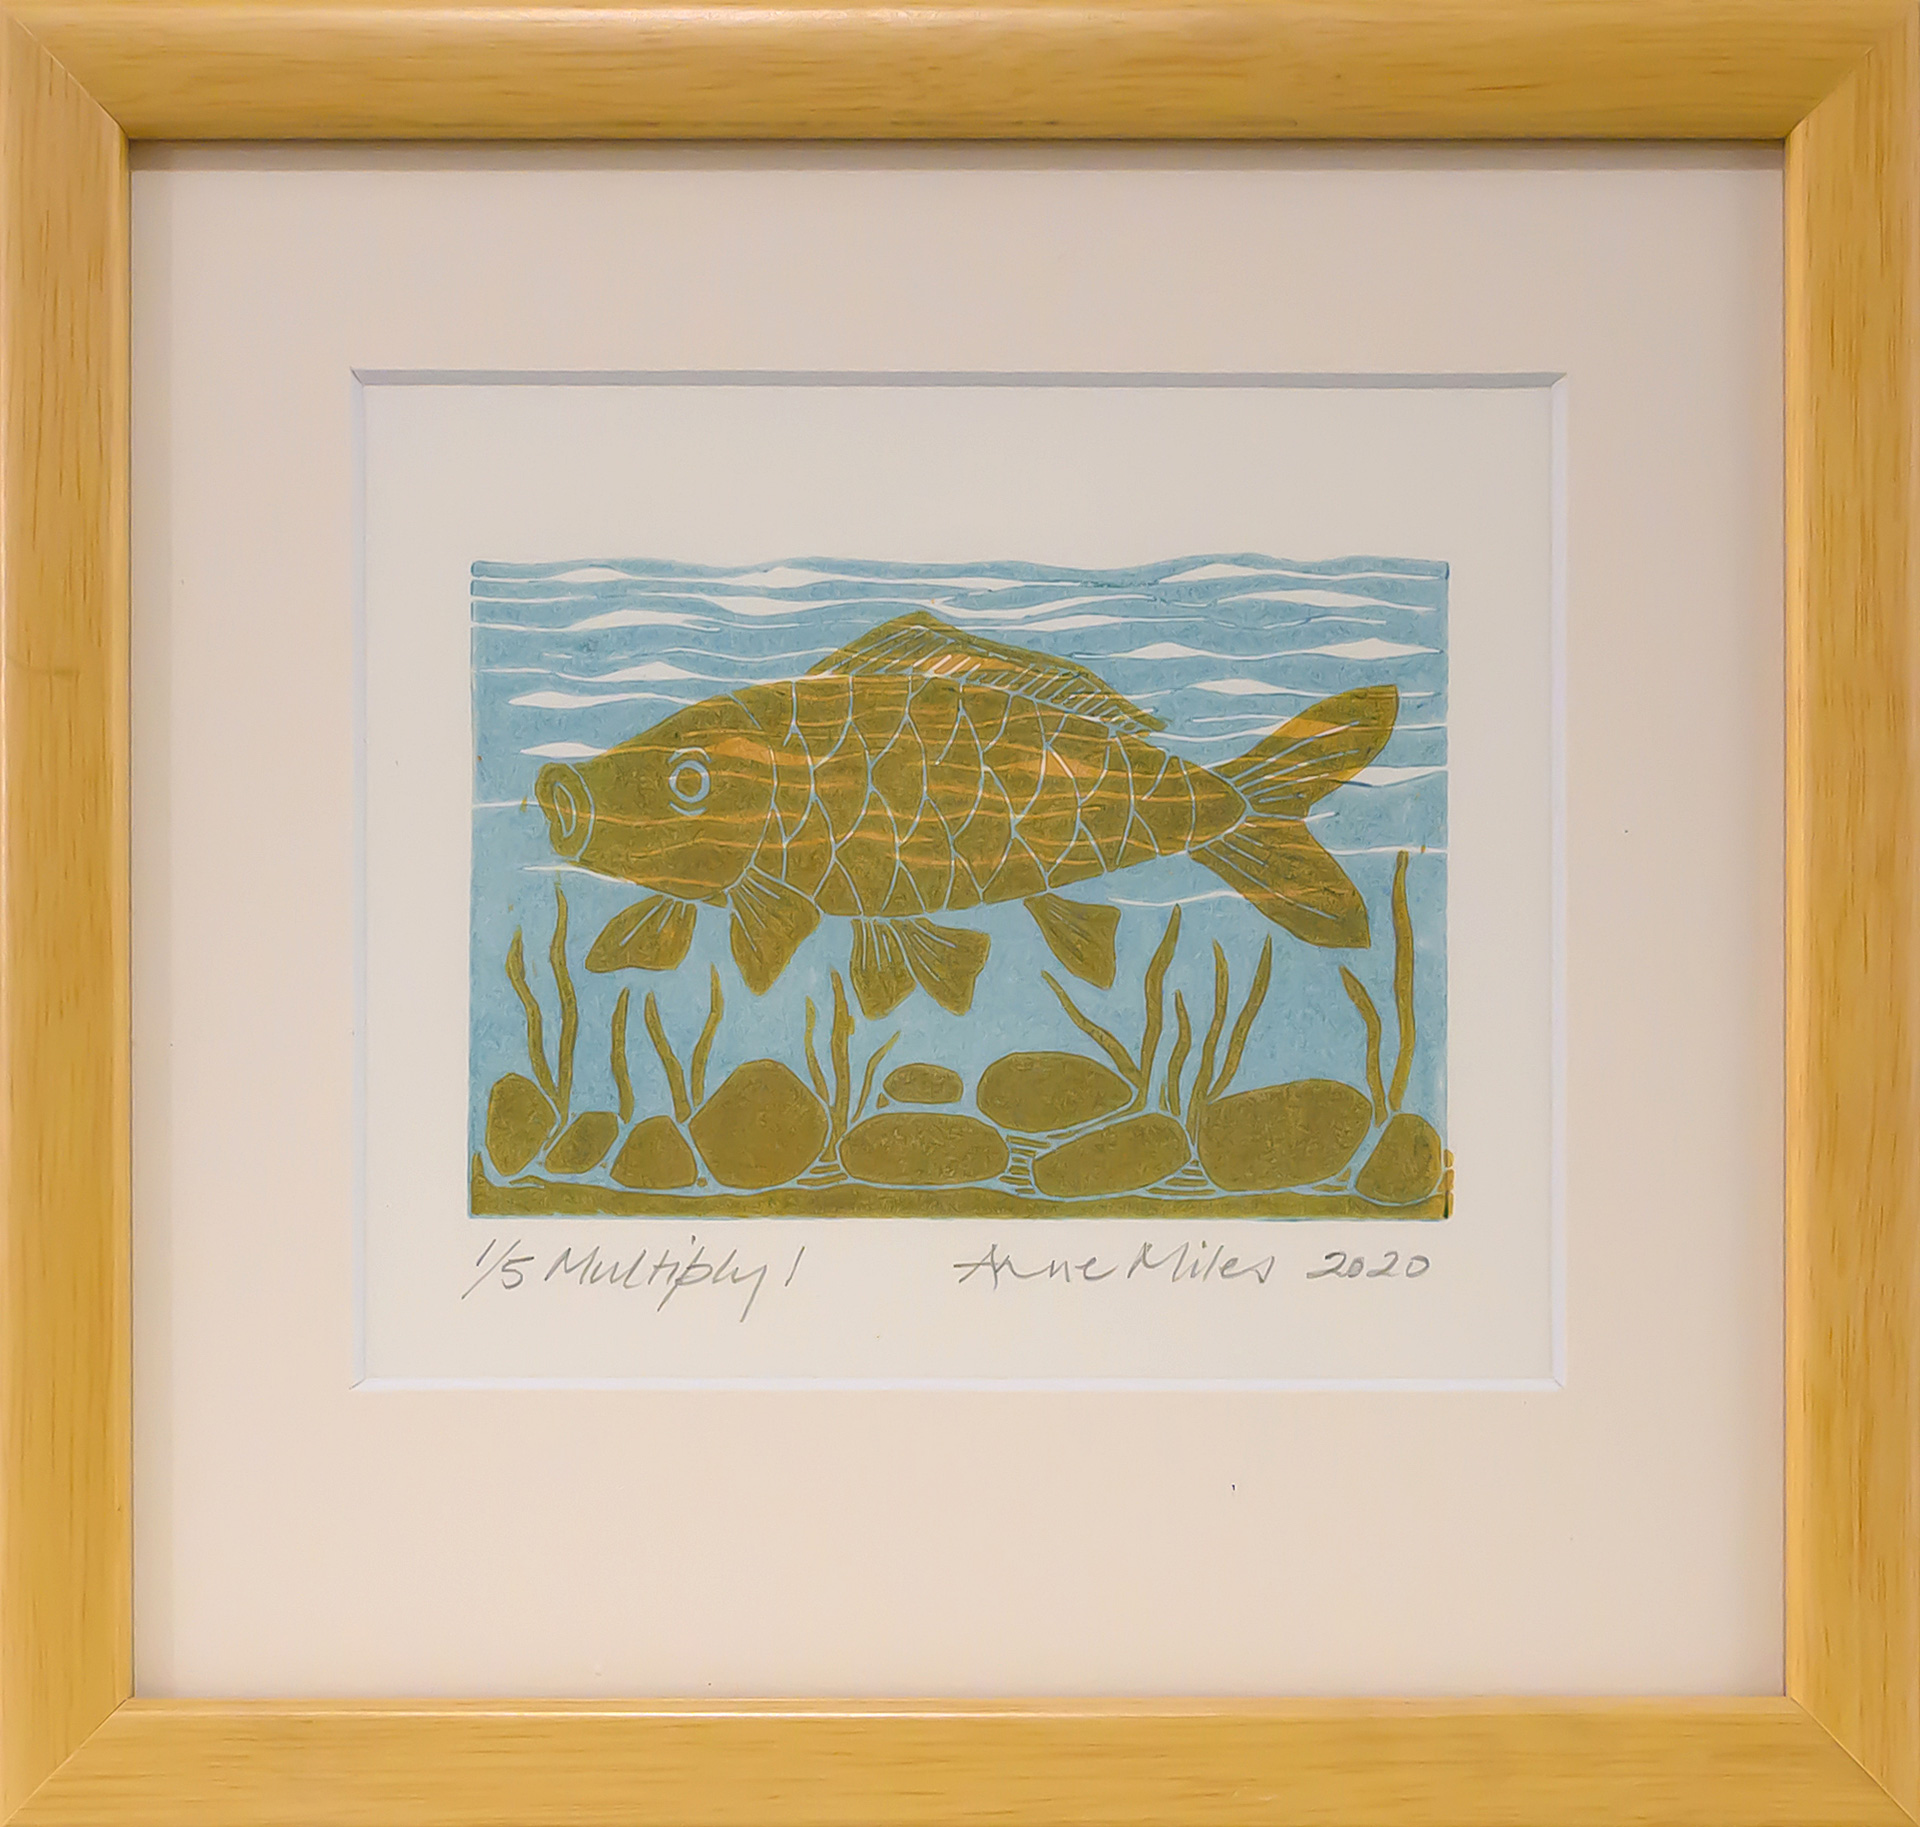 Framed artwork by Anne Miles of a yellow Carp with rocks and weeds in a blue water background